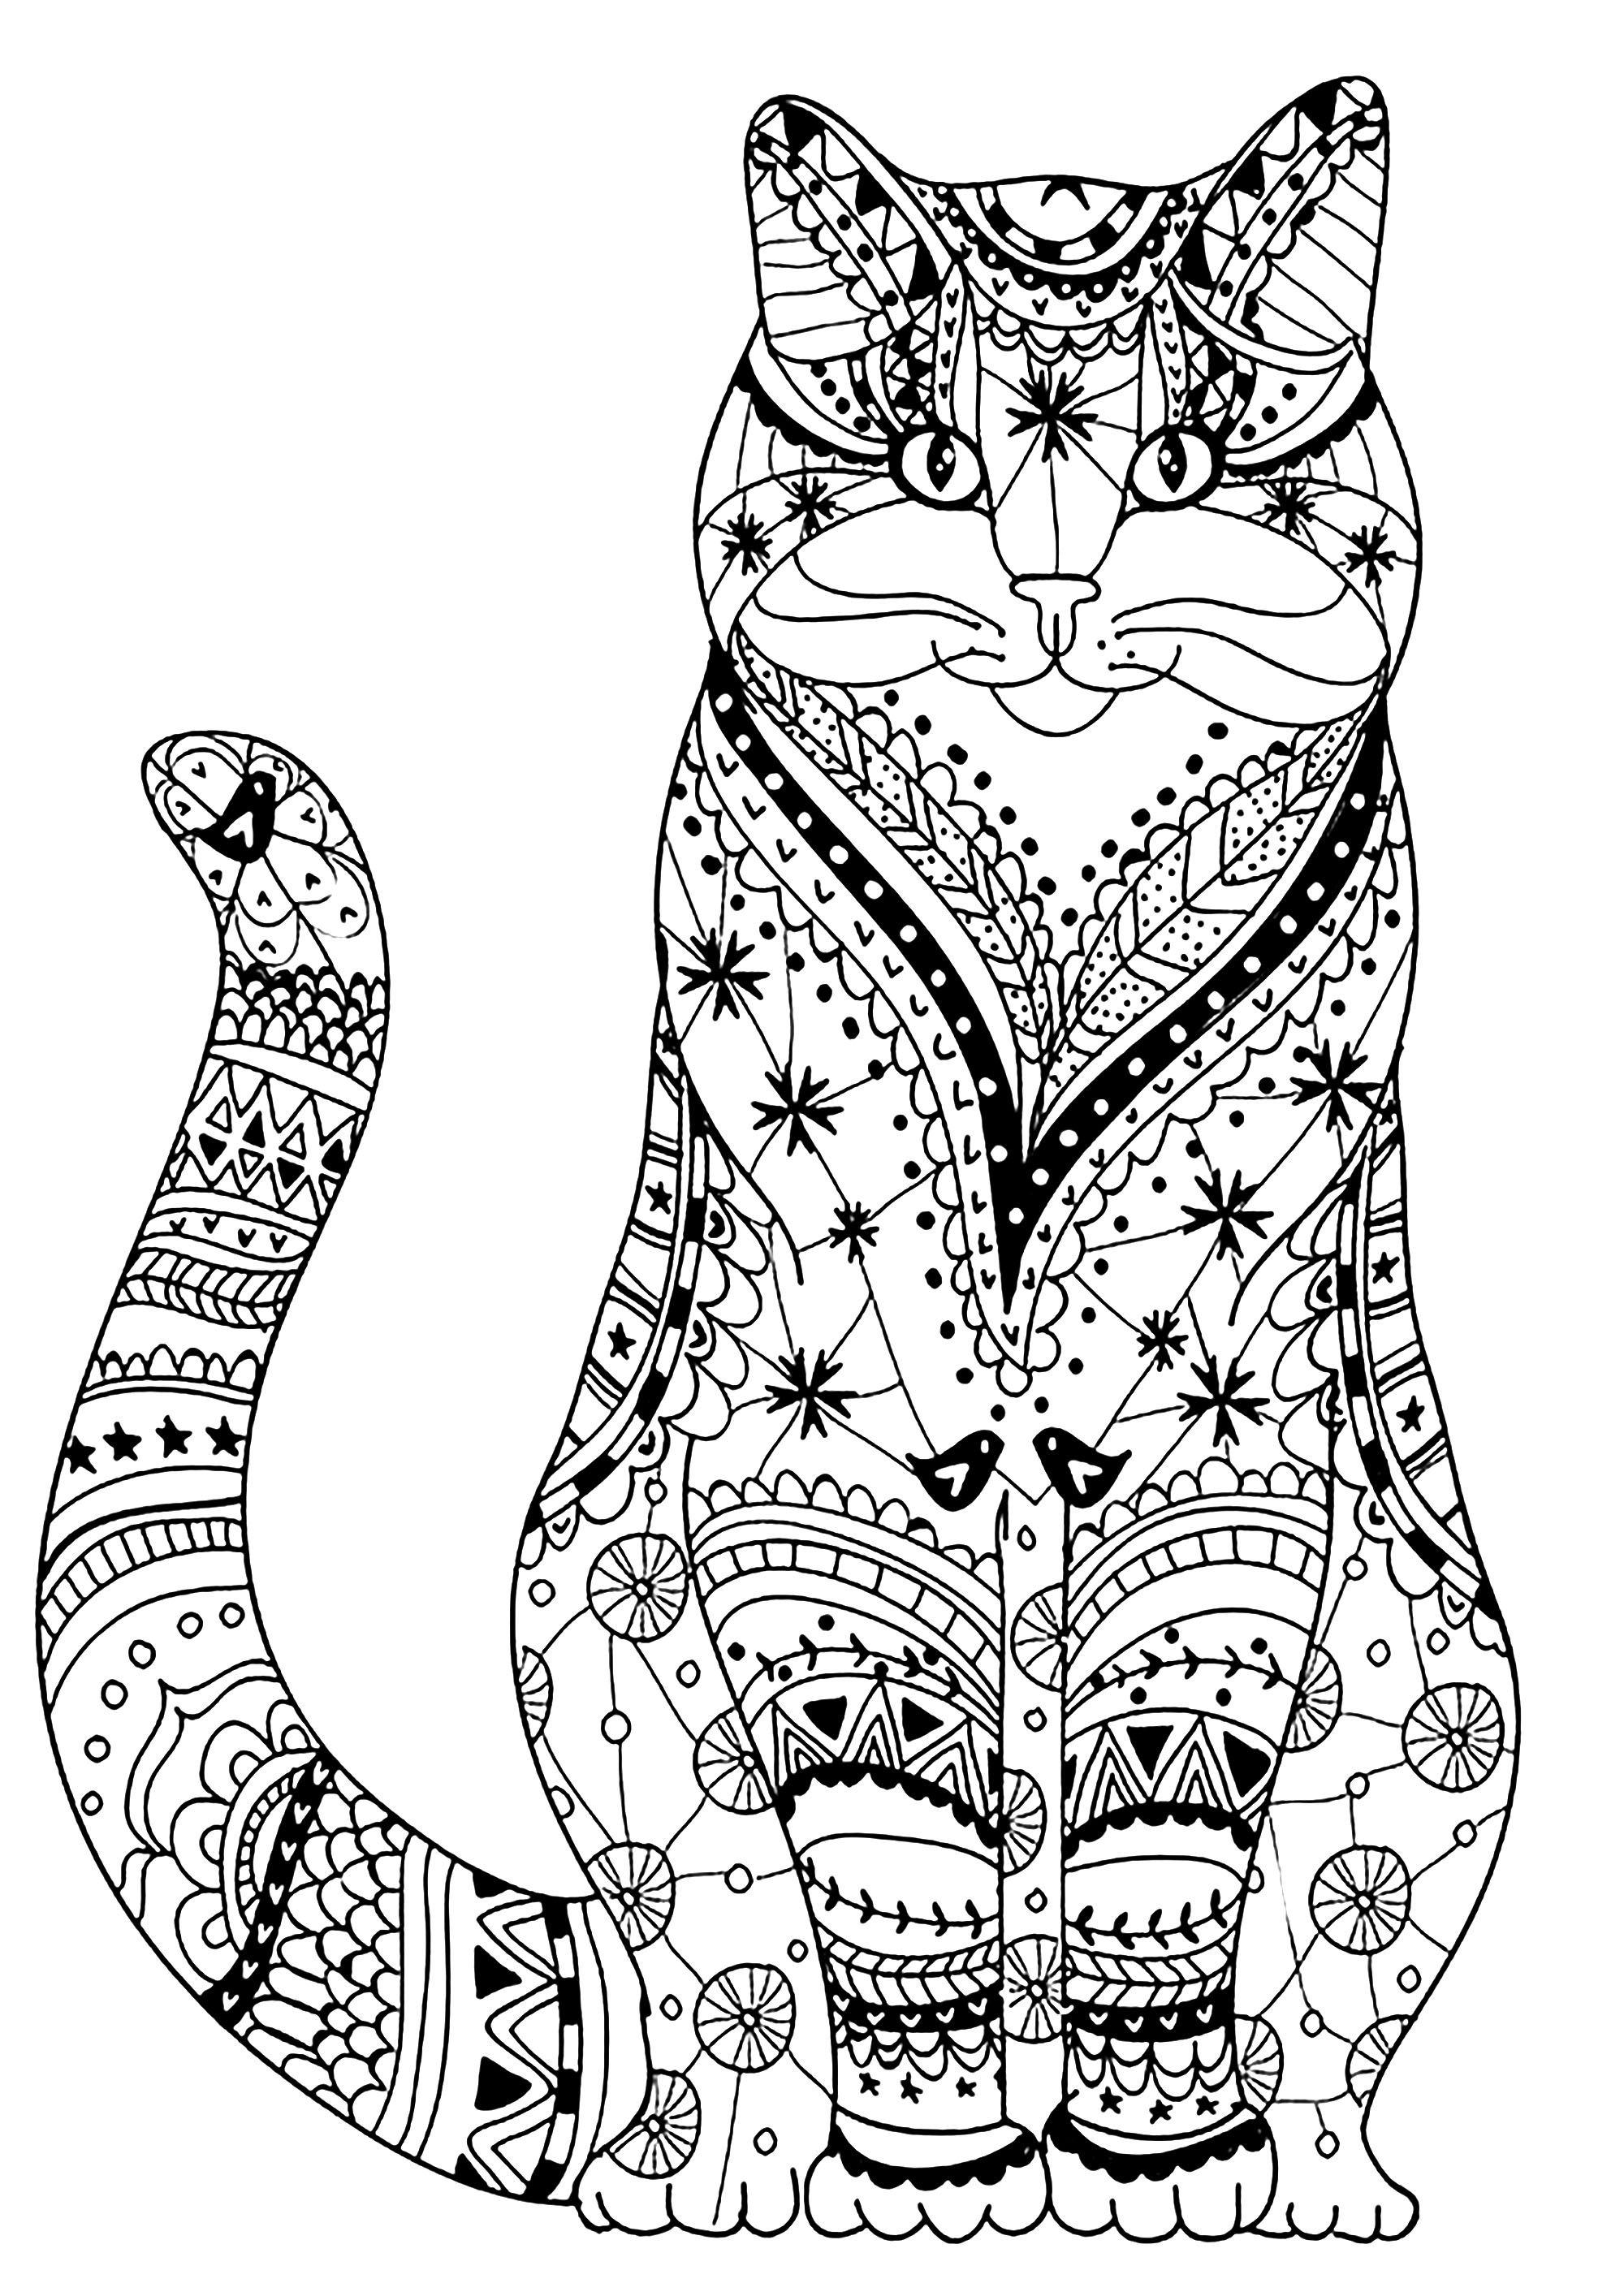 coloring kitty cat very wise cat cats adult coloring pages coloring kitty cat